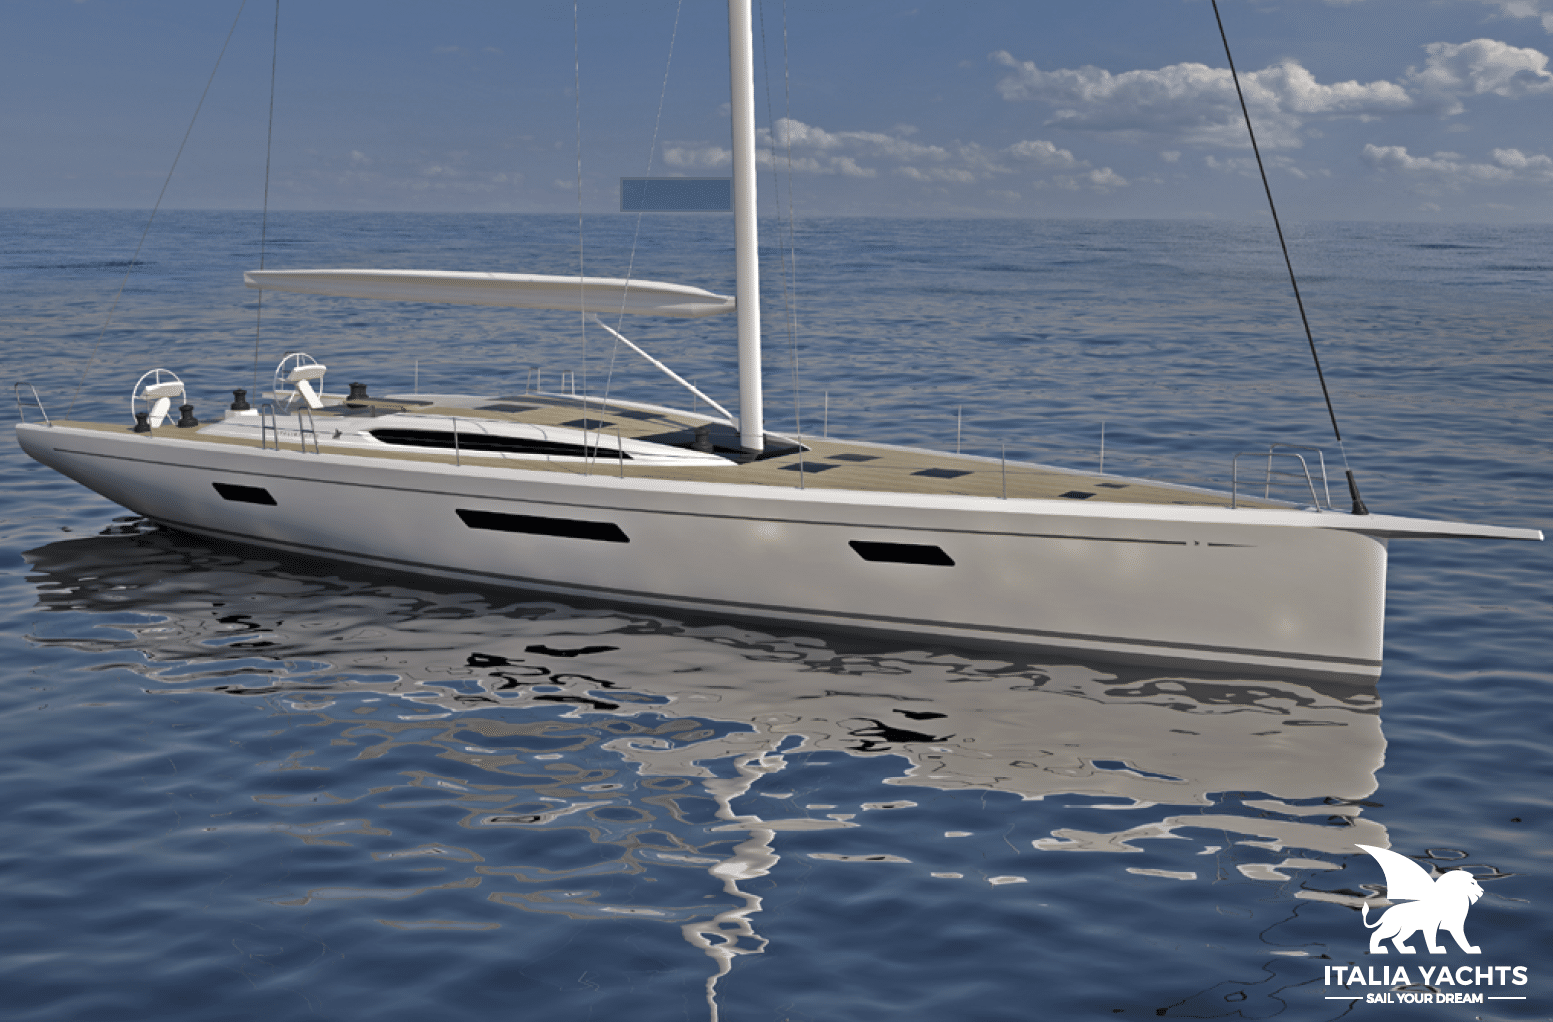 The new Italia Yachts 20.98 presented at Cannes